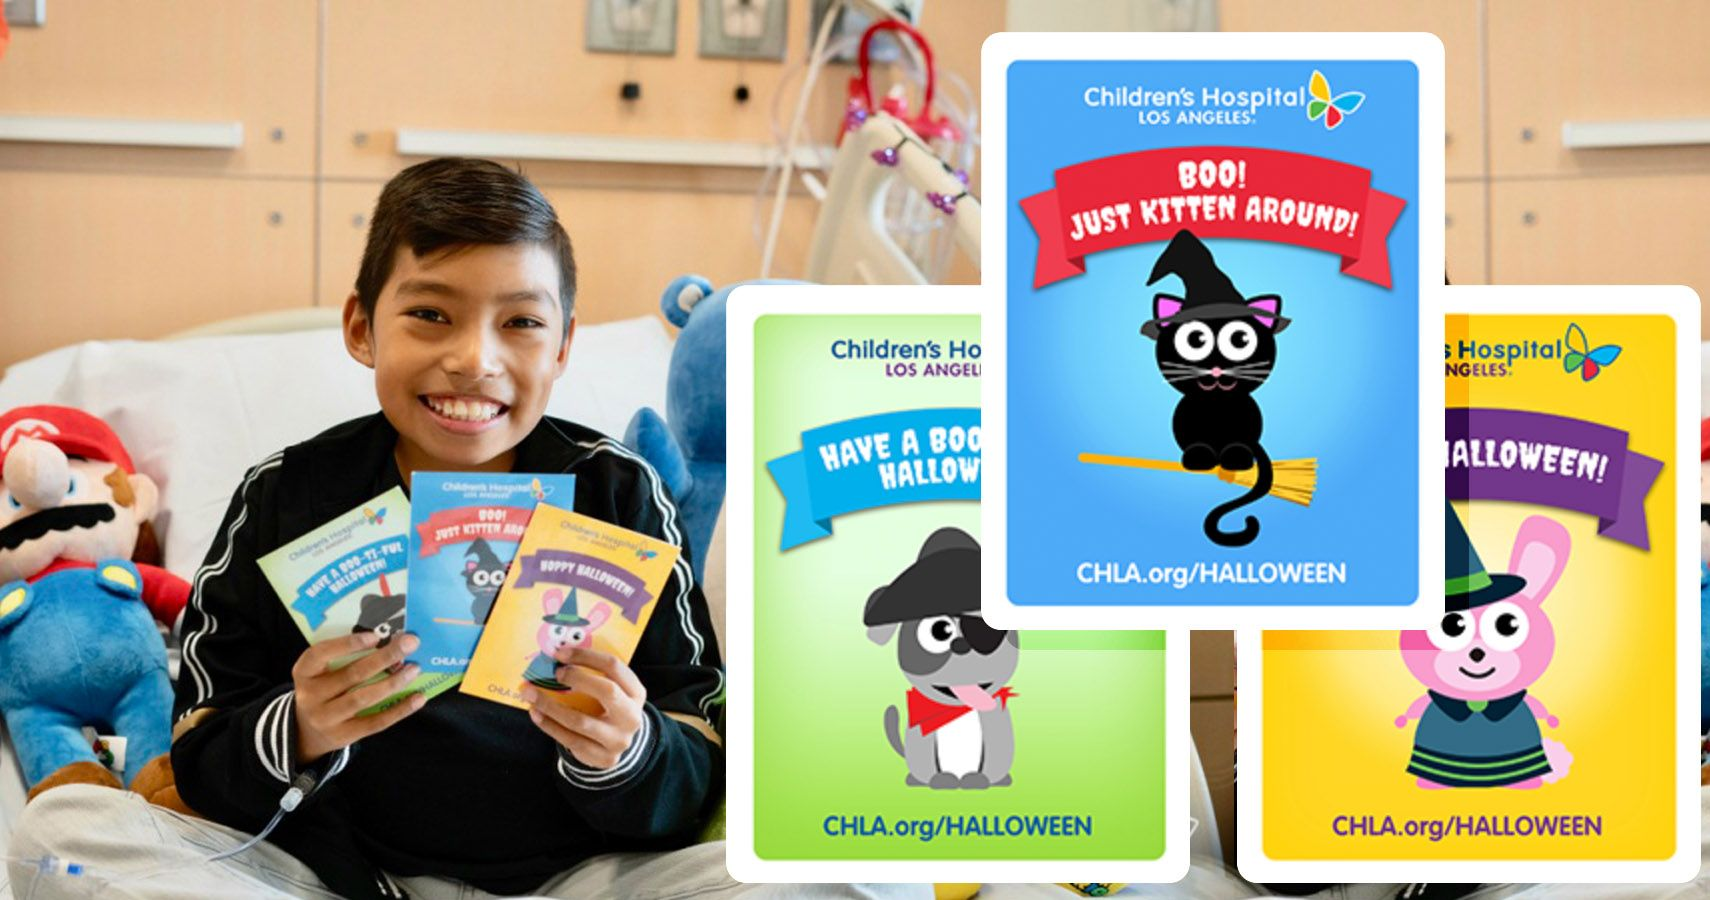 Children's Hospital Wants You To Send A Halloween Card To A Child